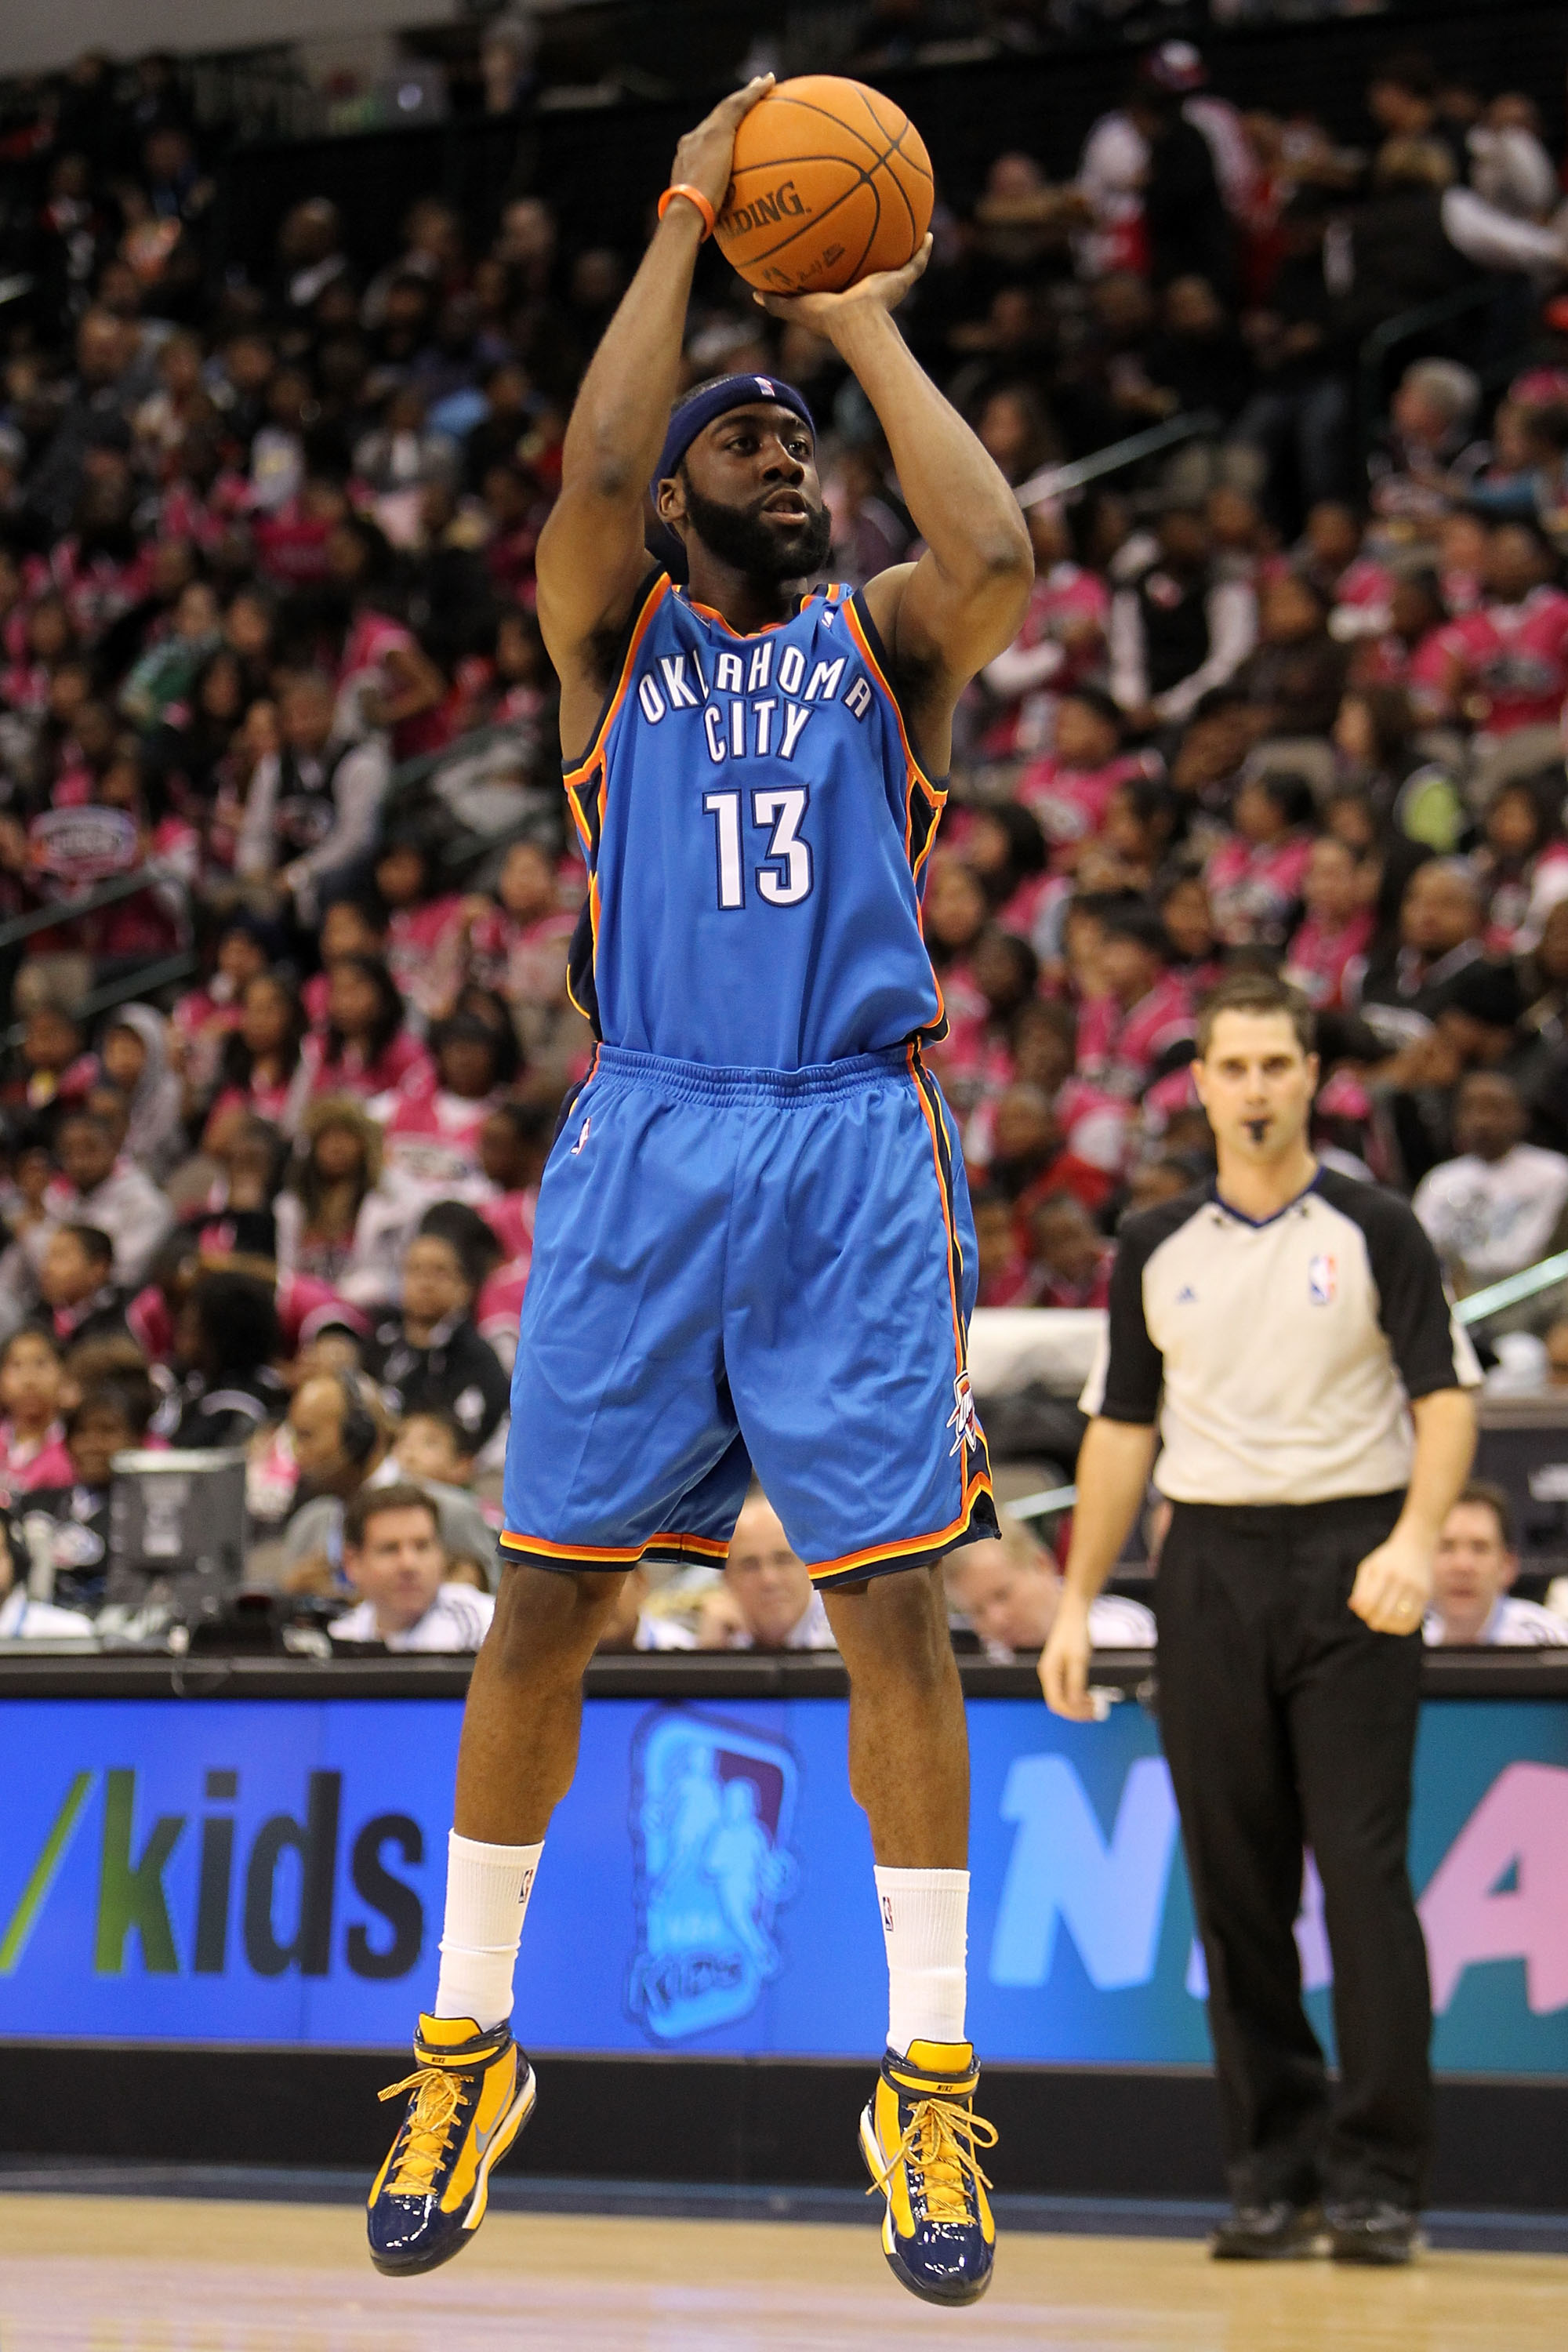 69106c202bb DALLAS - FEBRUARY 12: James Harden #13 of the Rookie team shoots against the